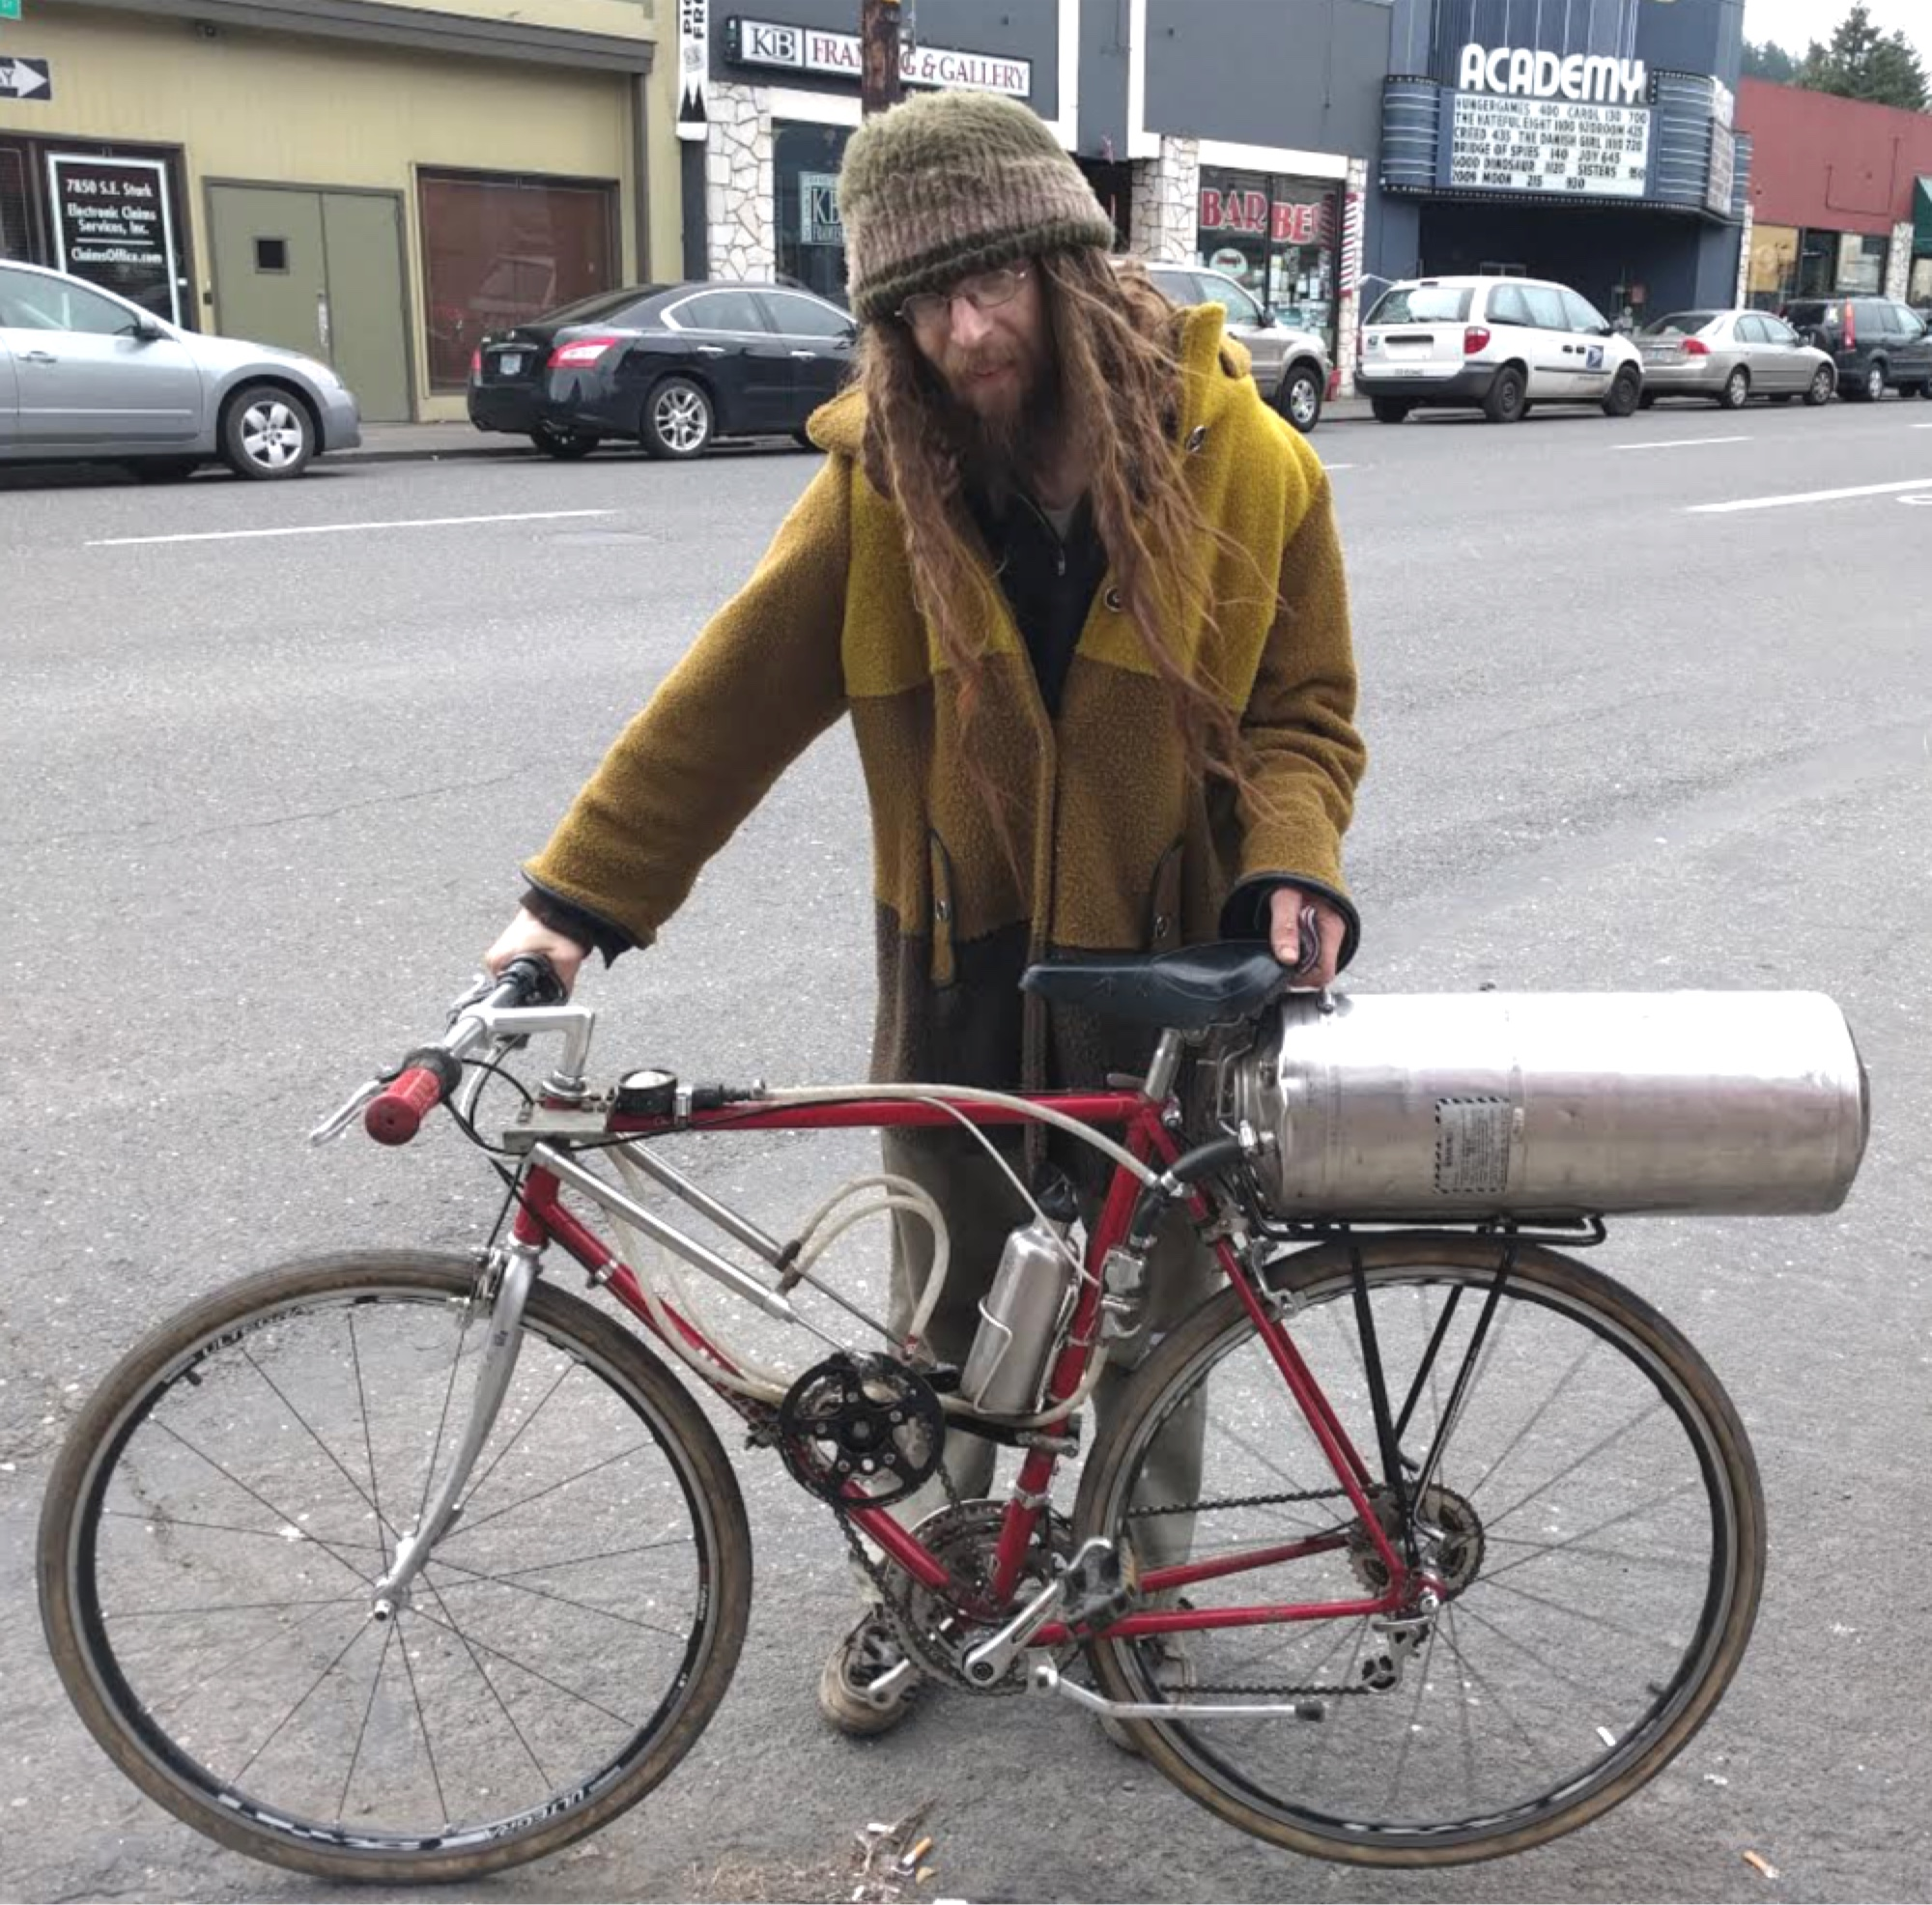 Cory Little S Air Powered Bike Is Turning Heads And Pedals Bikeportland Org